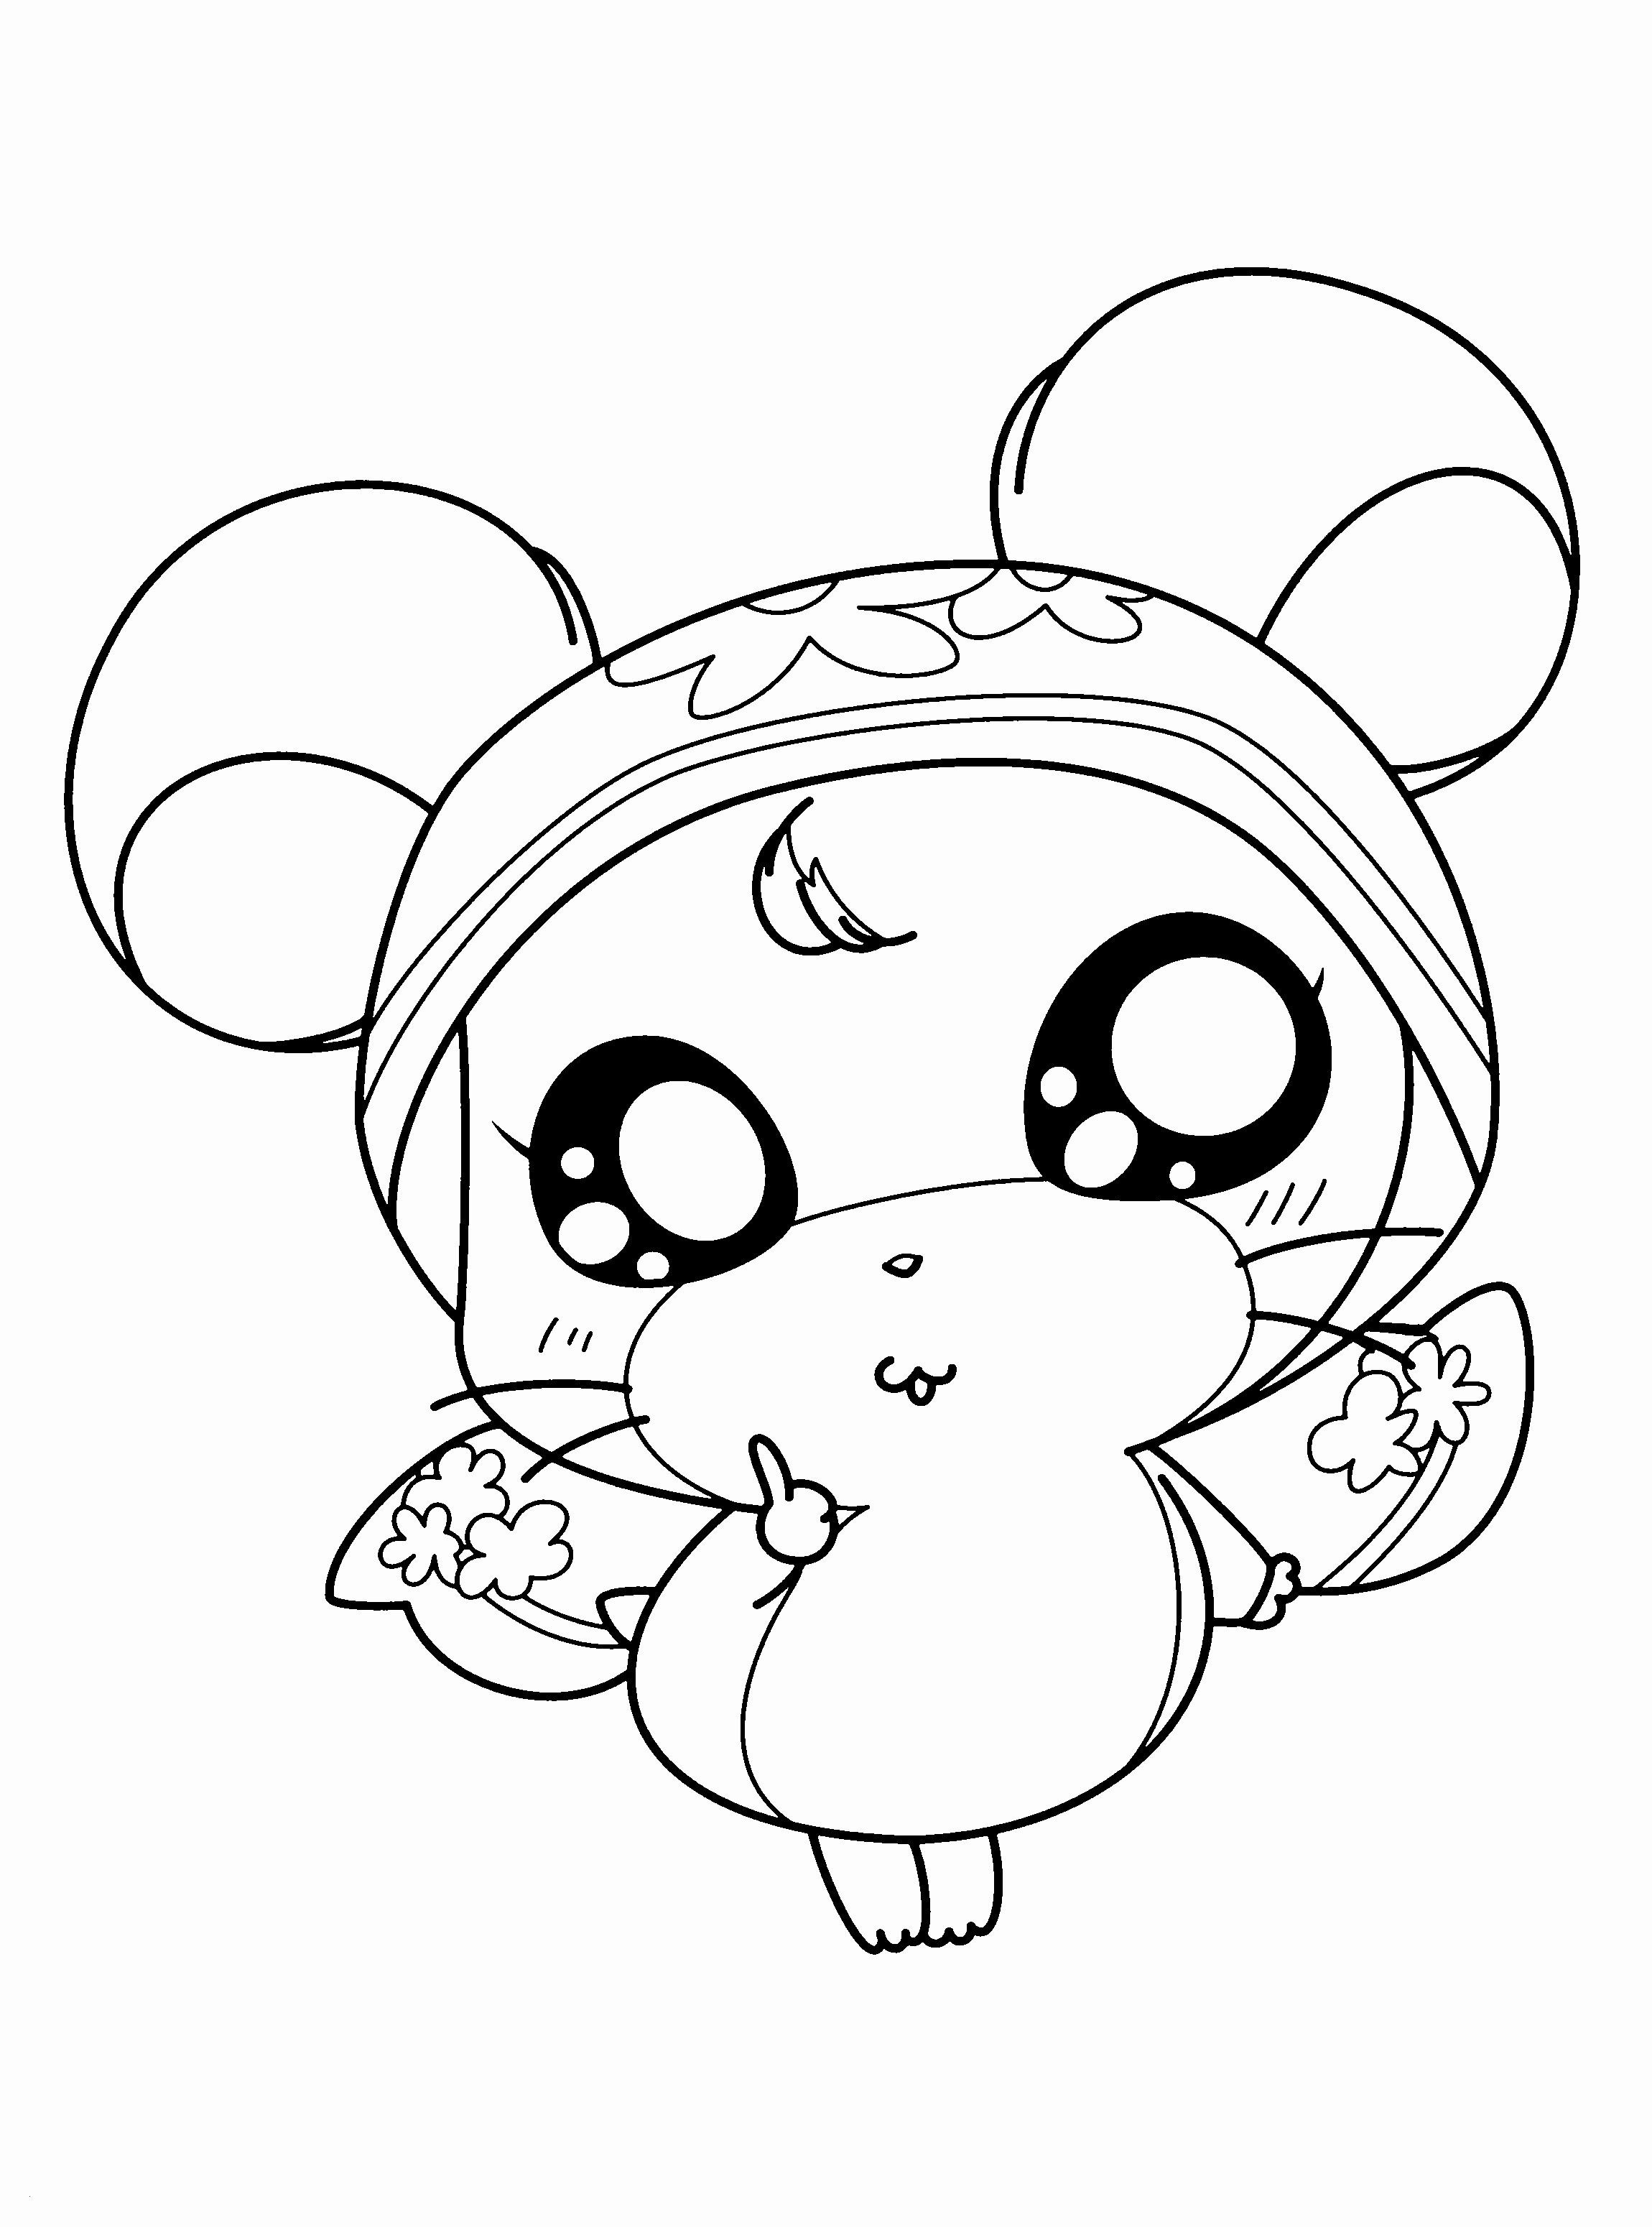 coloring pages for preschoolers 8f